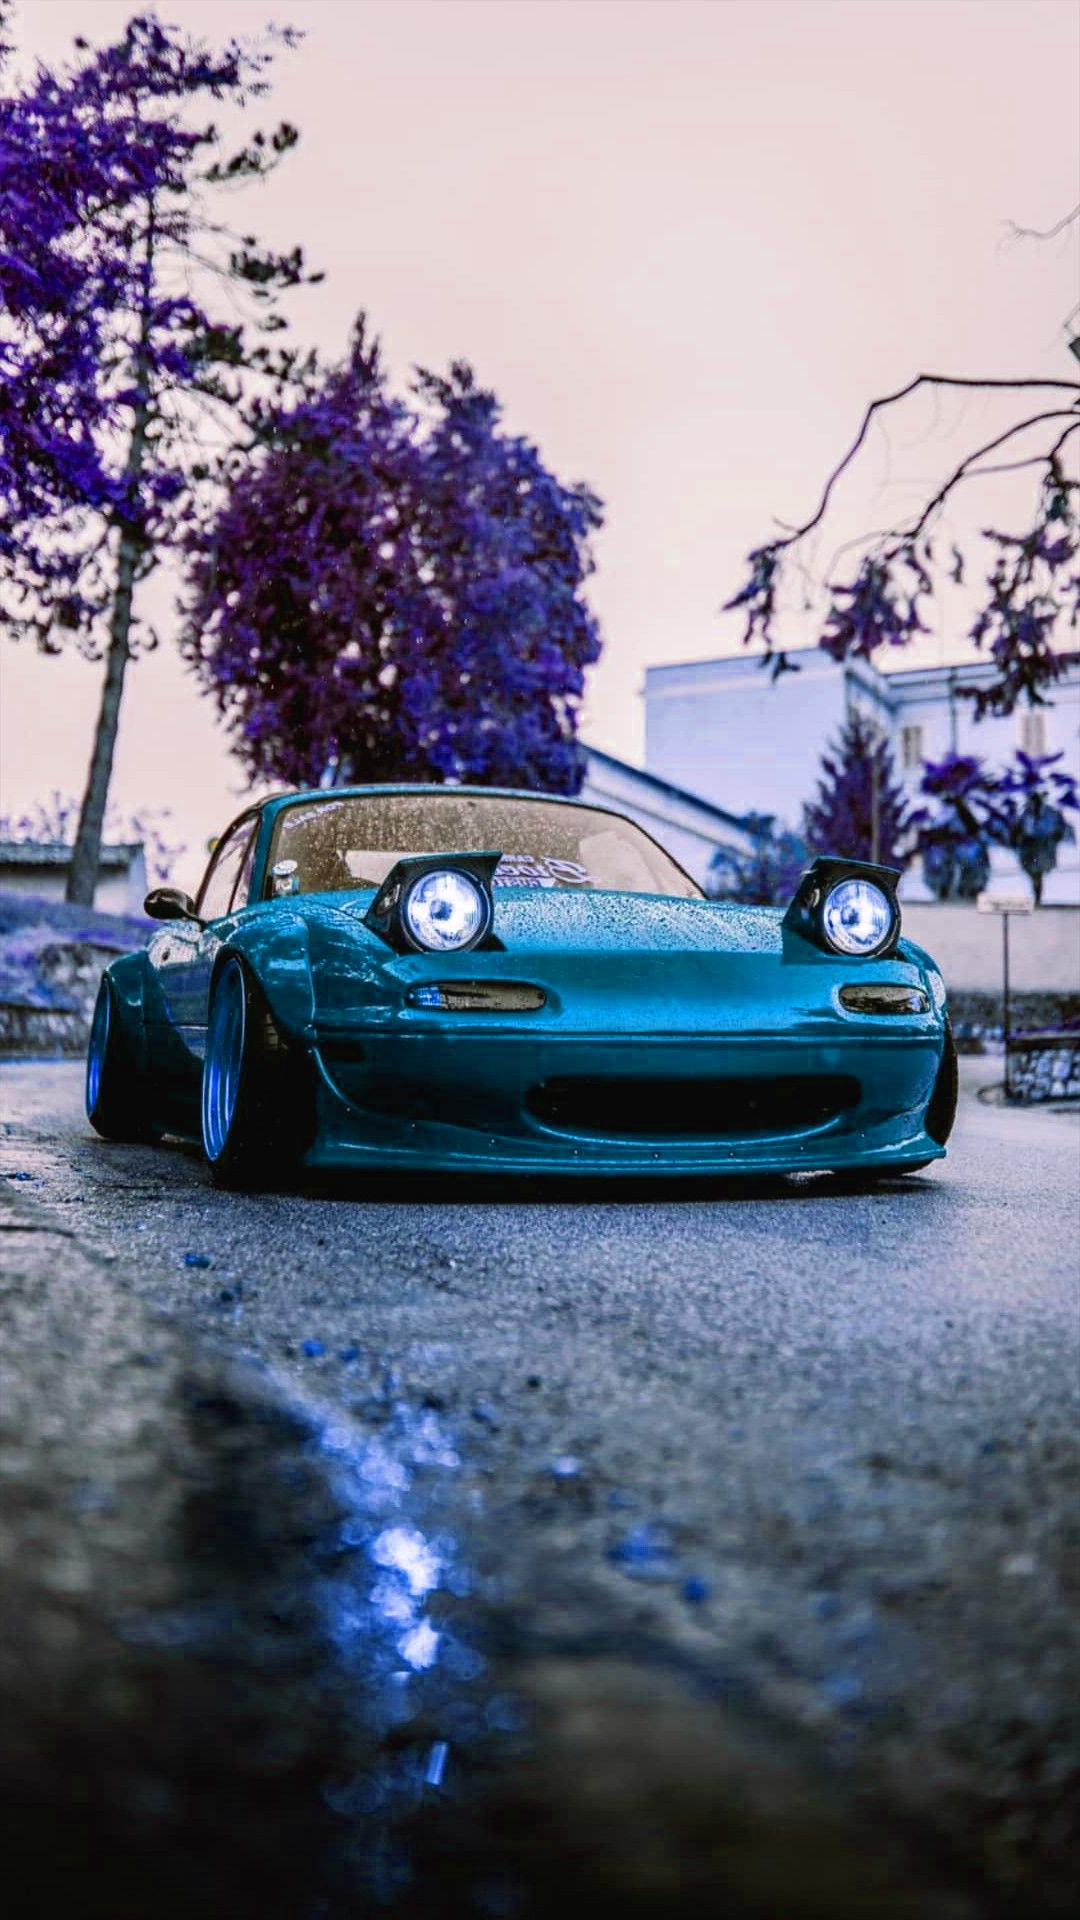 We hope you enjoy our. Aesthetic Jdm Wallpaper Kolpaper Awesome Free Hd Wallpapers